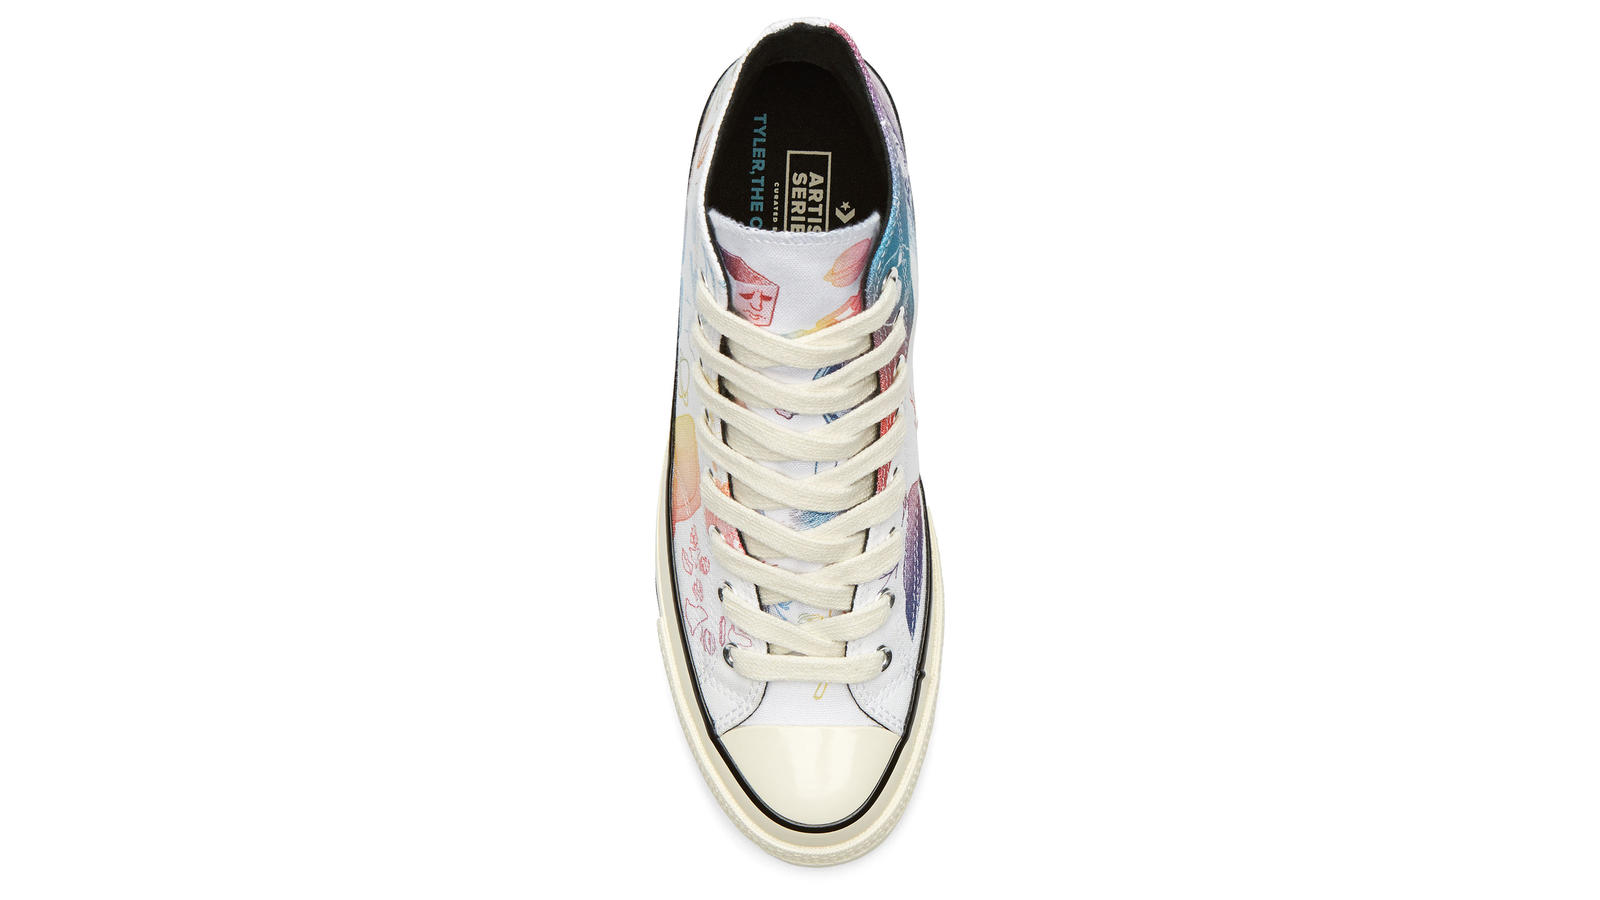 Converse 22383 Fl Artist Series Pdp Images1714